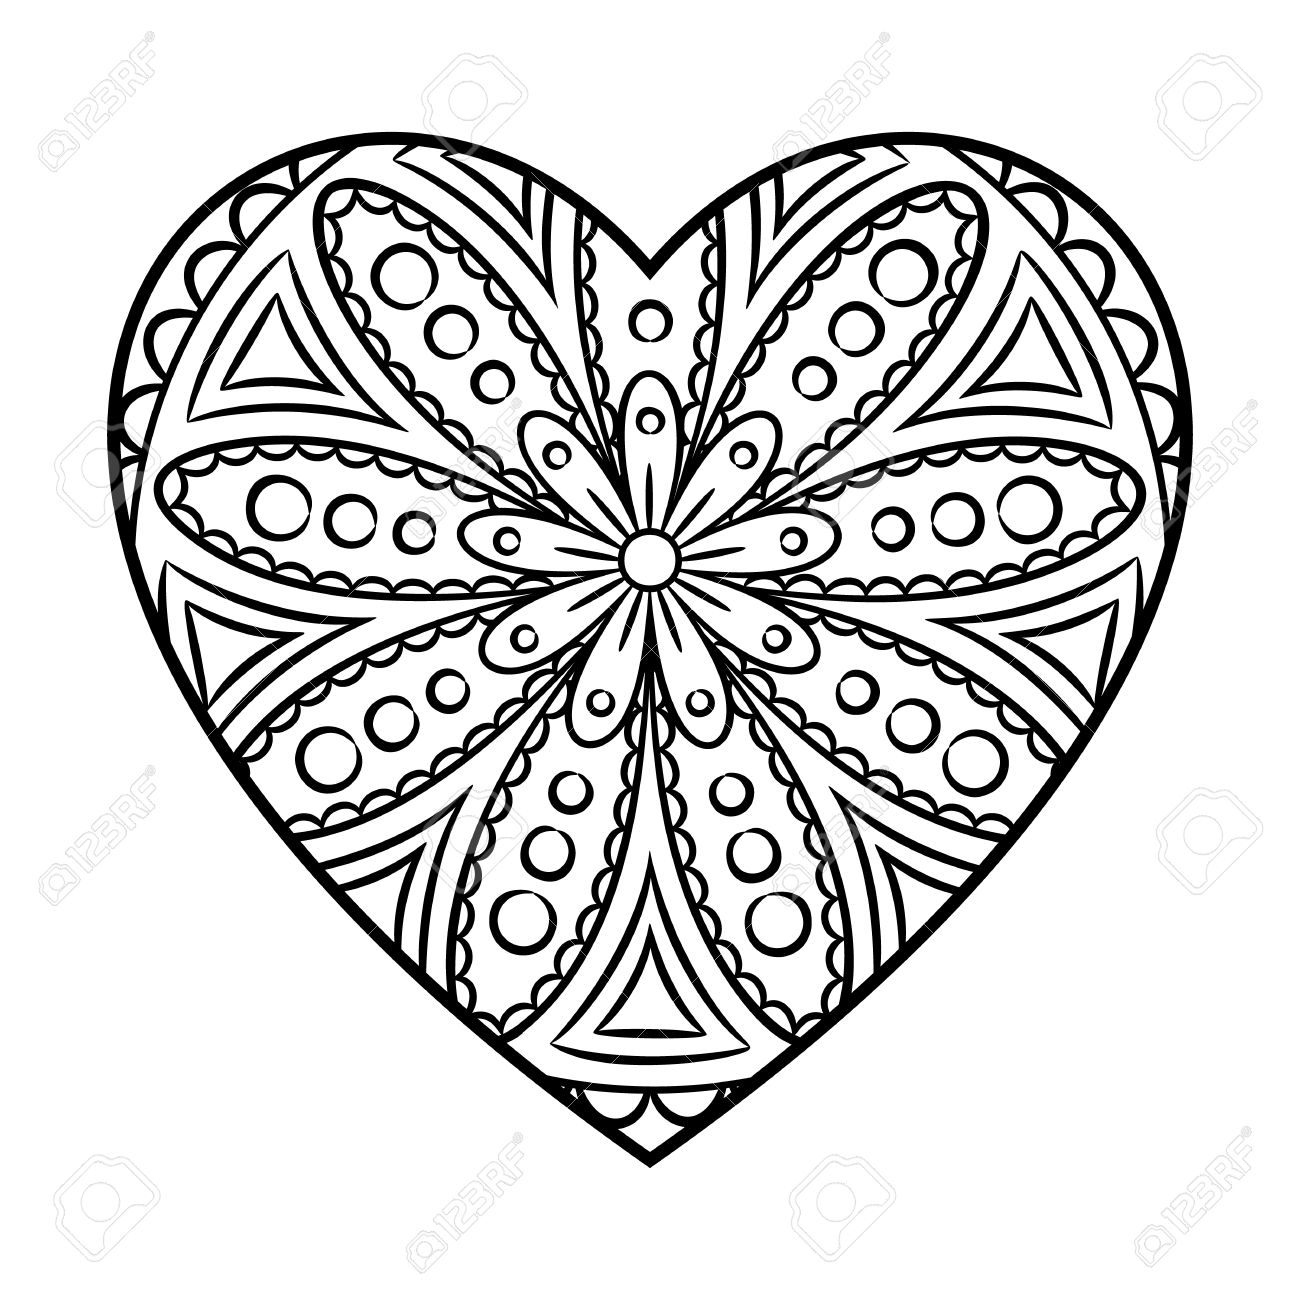 Heart Mandala Coloring Book Coloring Coloring Pages